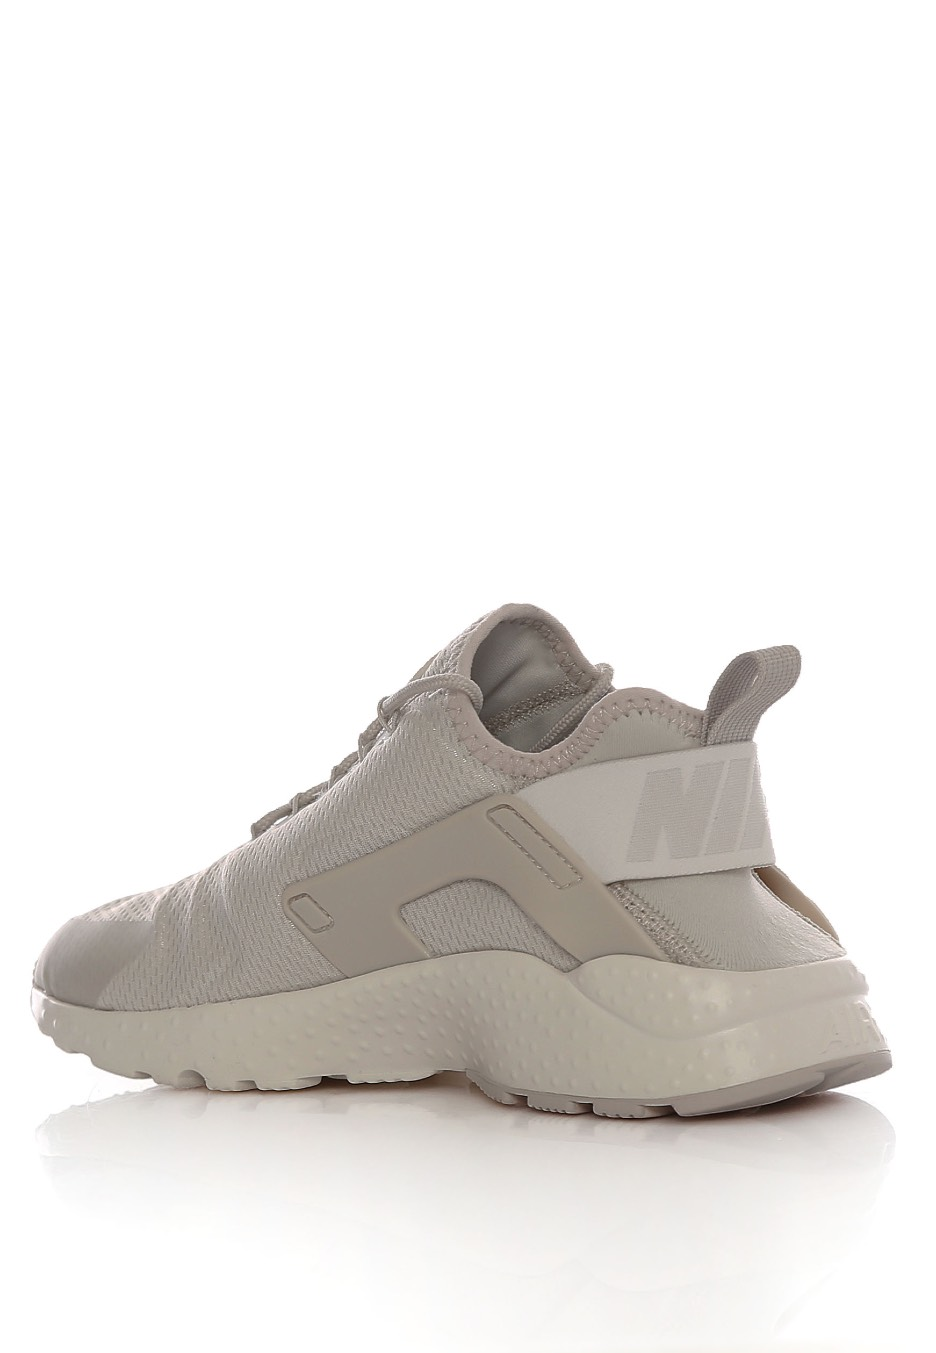 newest a21a2 1d412 ... where can i buy nike air huarache run ultra light bone light bone sail girl  shoes